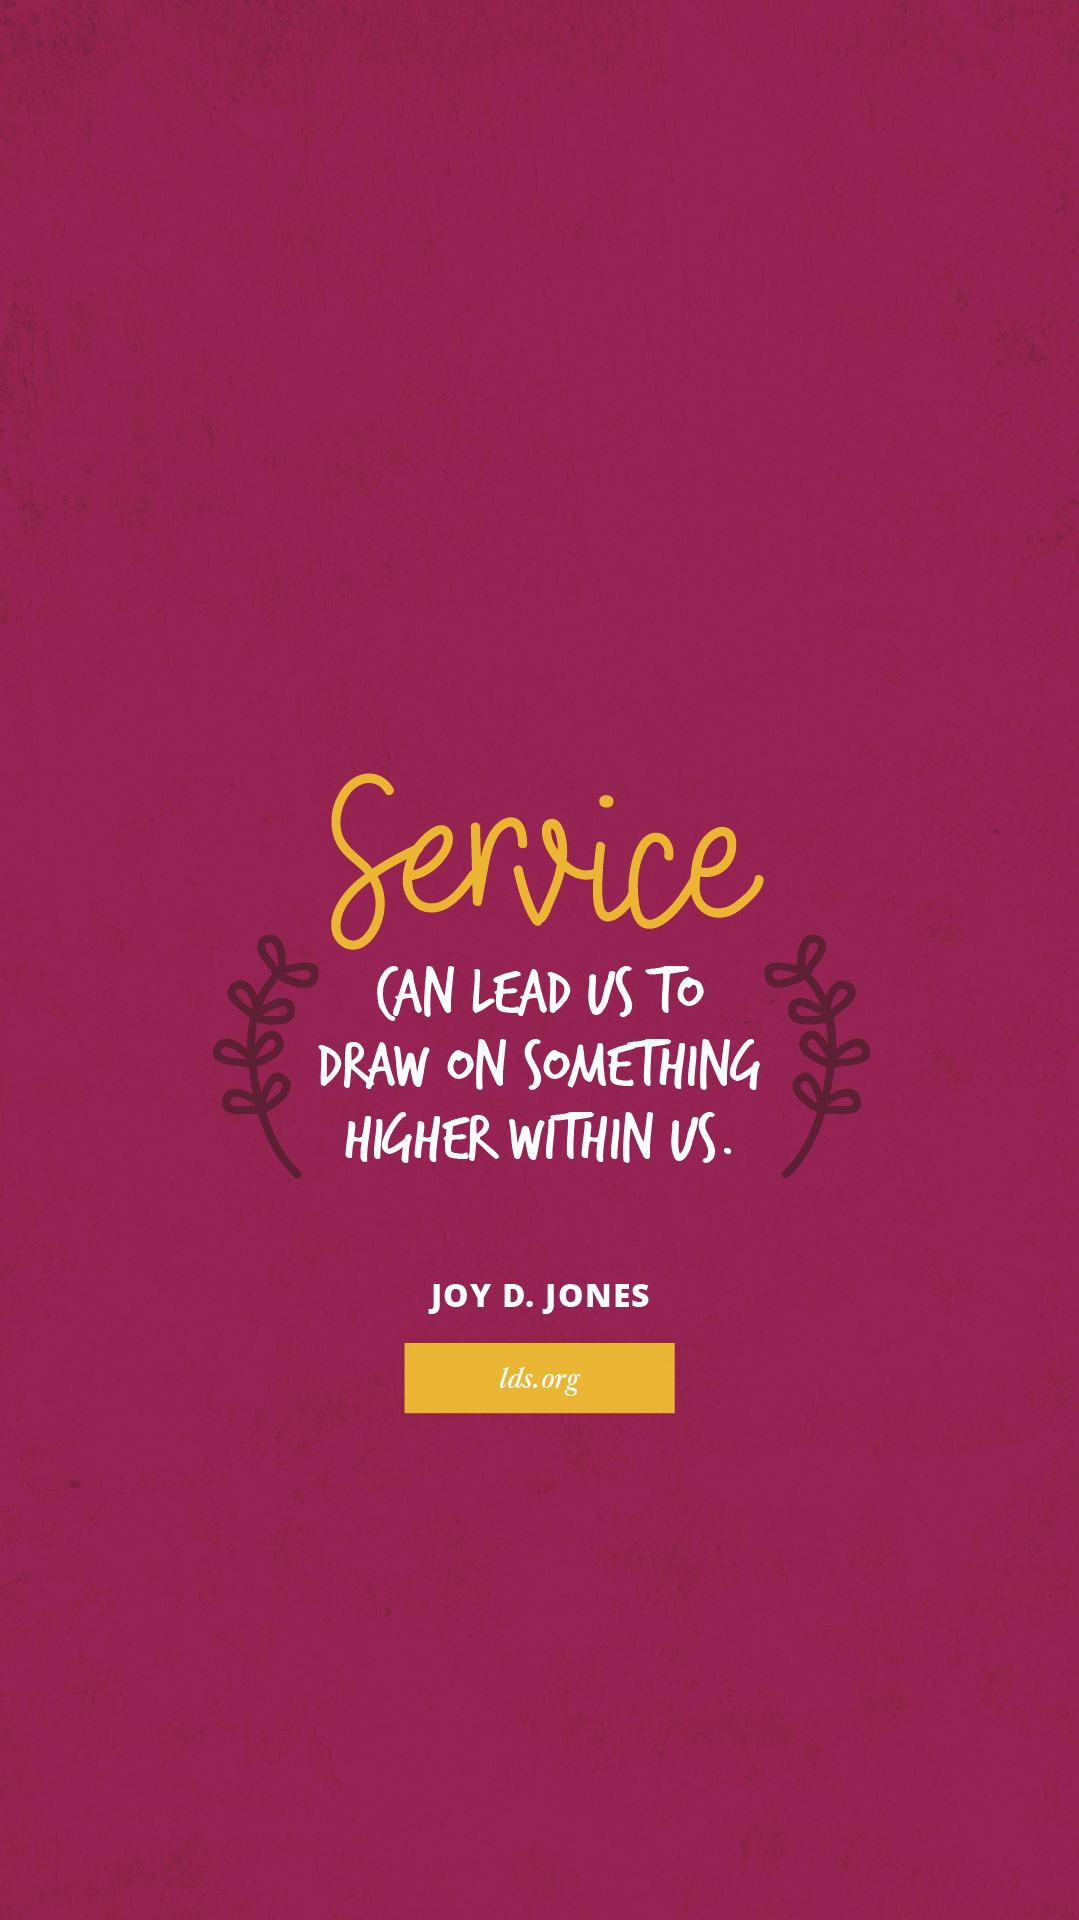 """Service can lead us to draw on something higher within us.""—Joy D. Jones, ""For Him"""